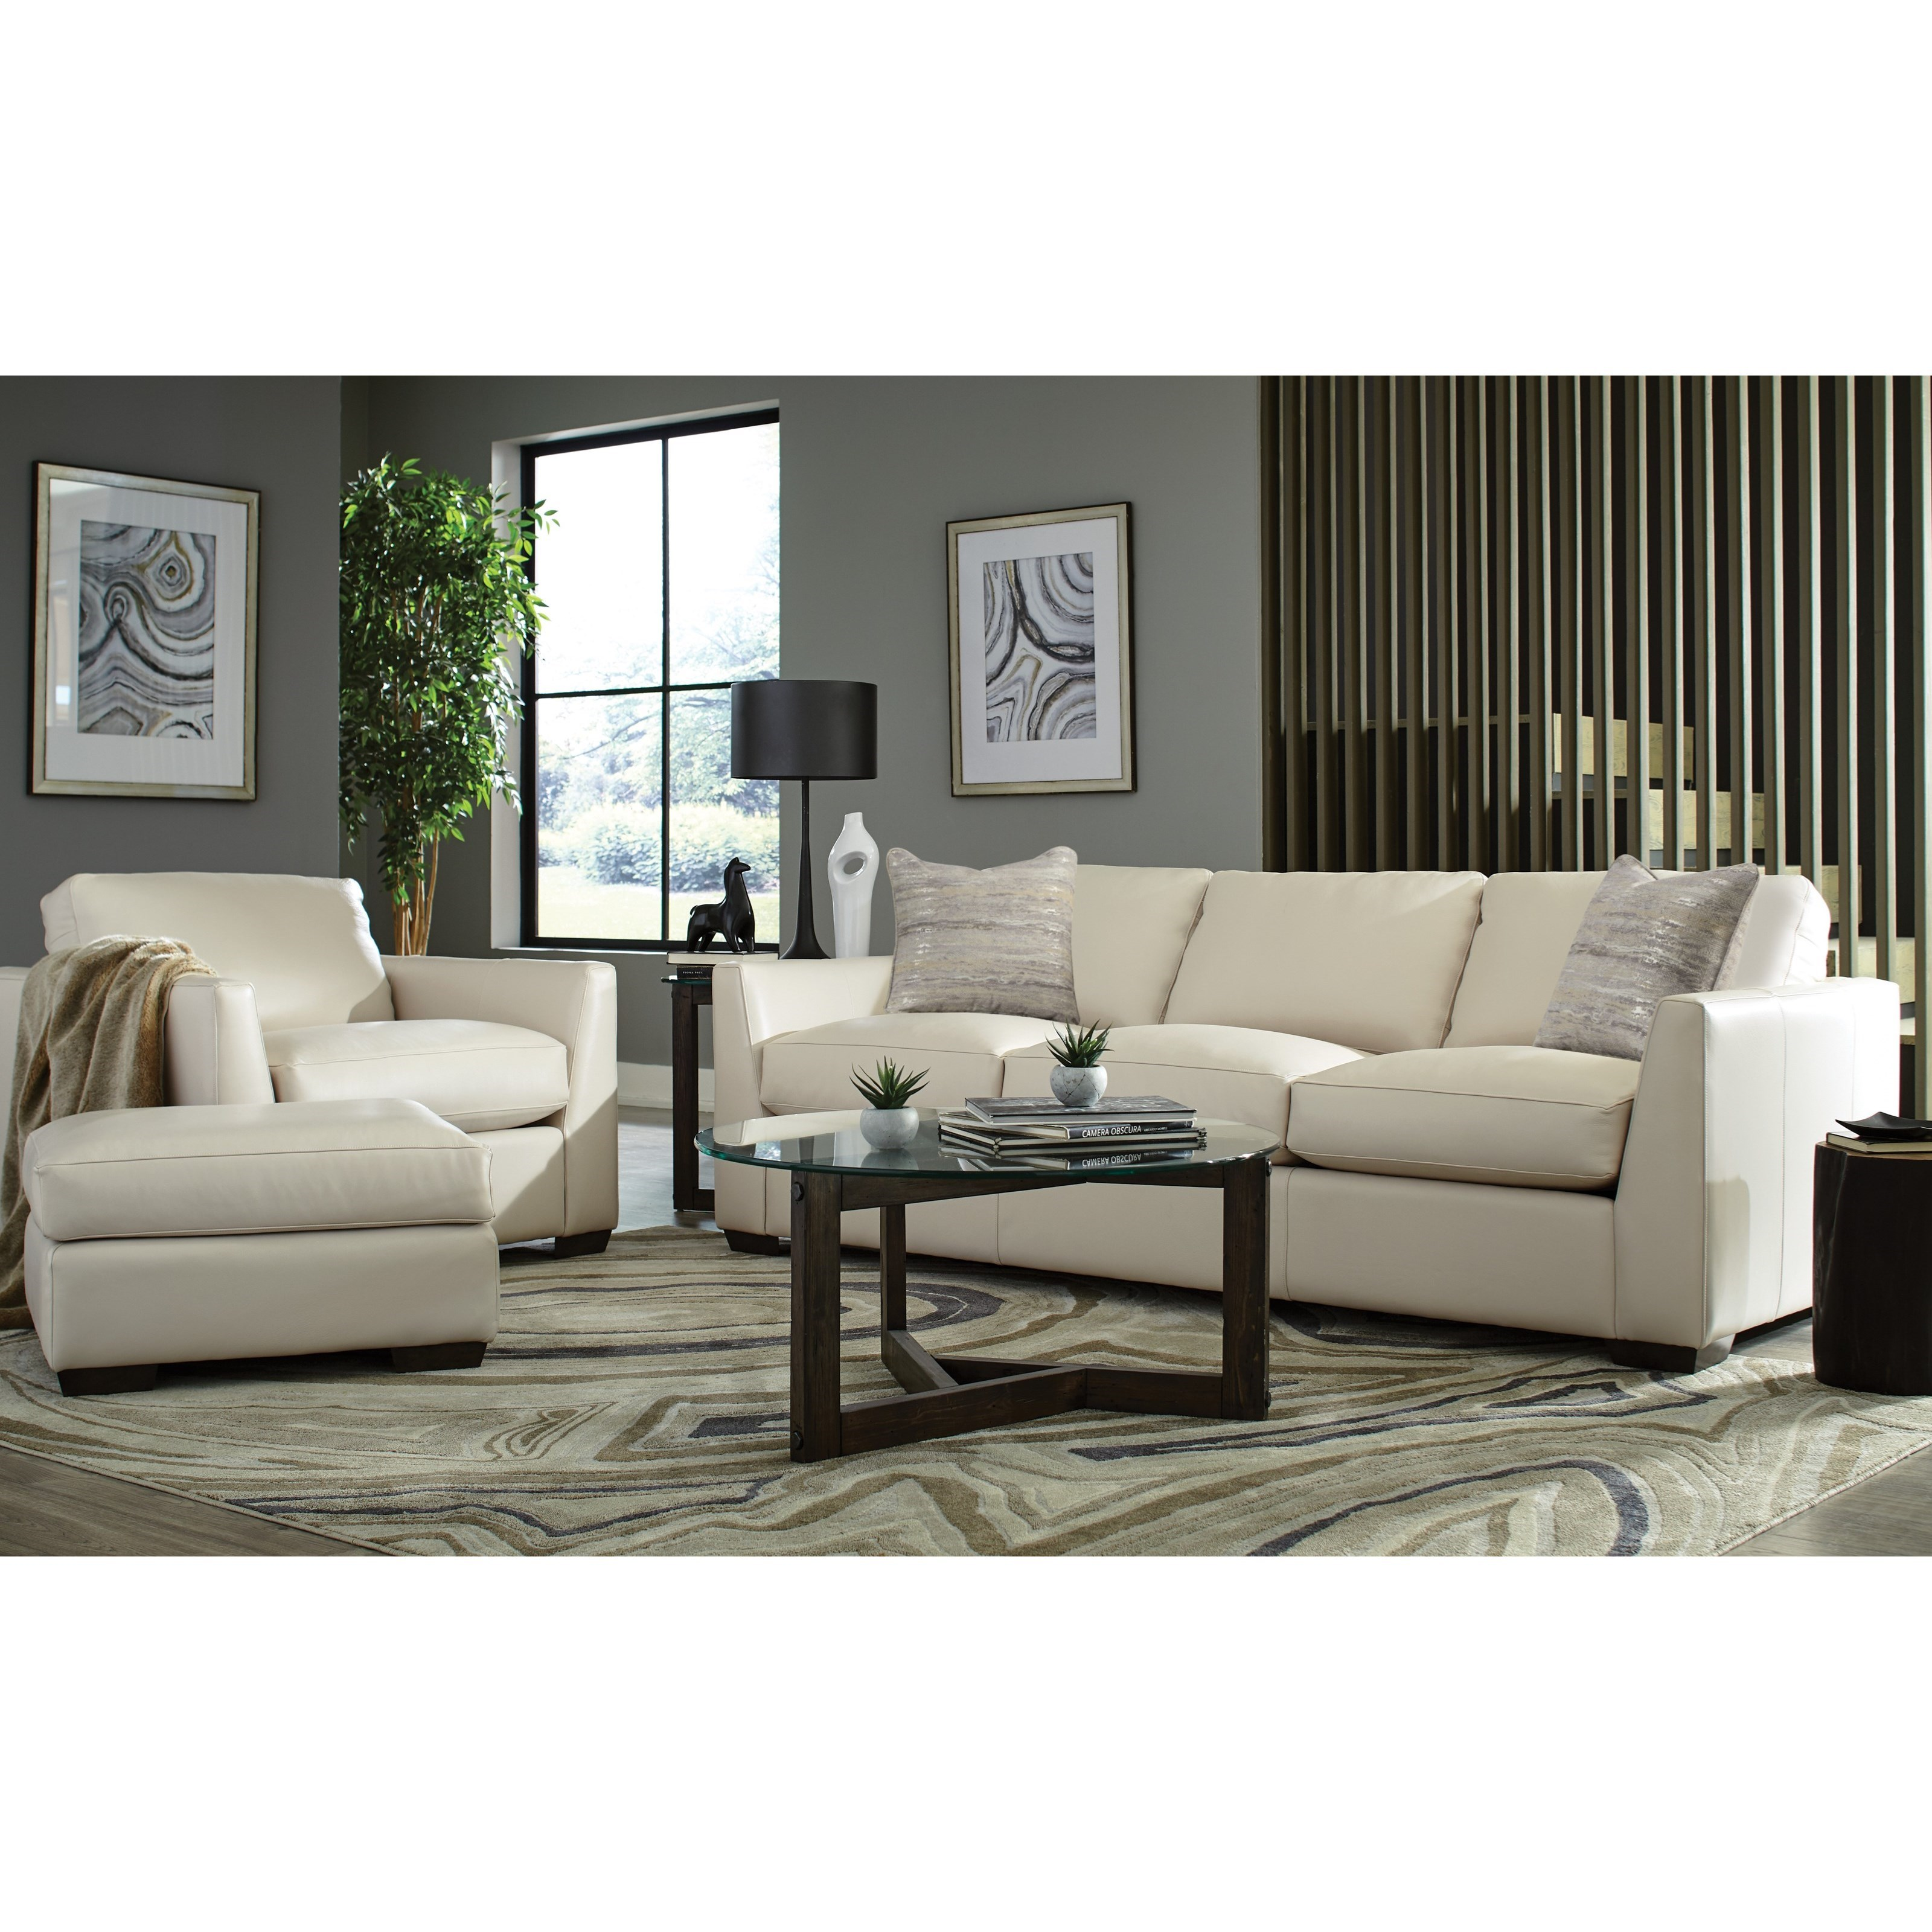 L783950 Living Room Group by Craftmaster at Baer's Furniture